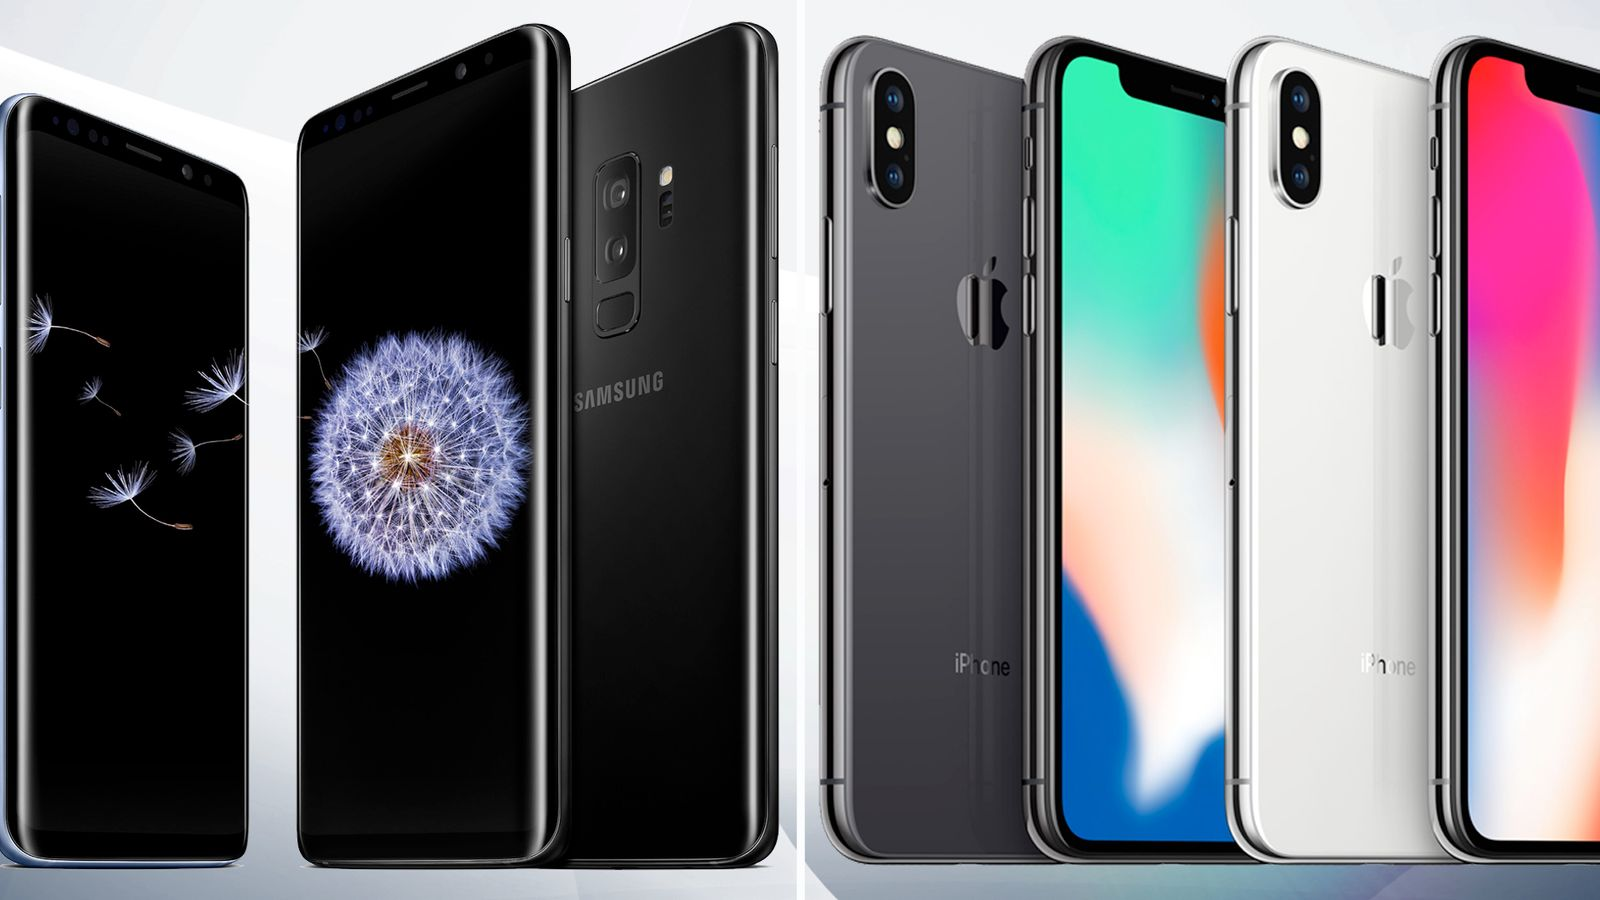 samsung vs iphone the samsung s9 vs the iphone x how do they compare 12913